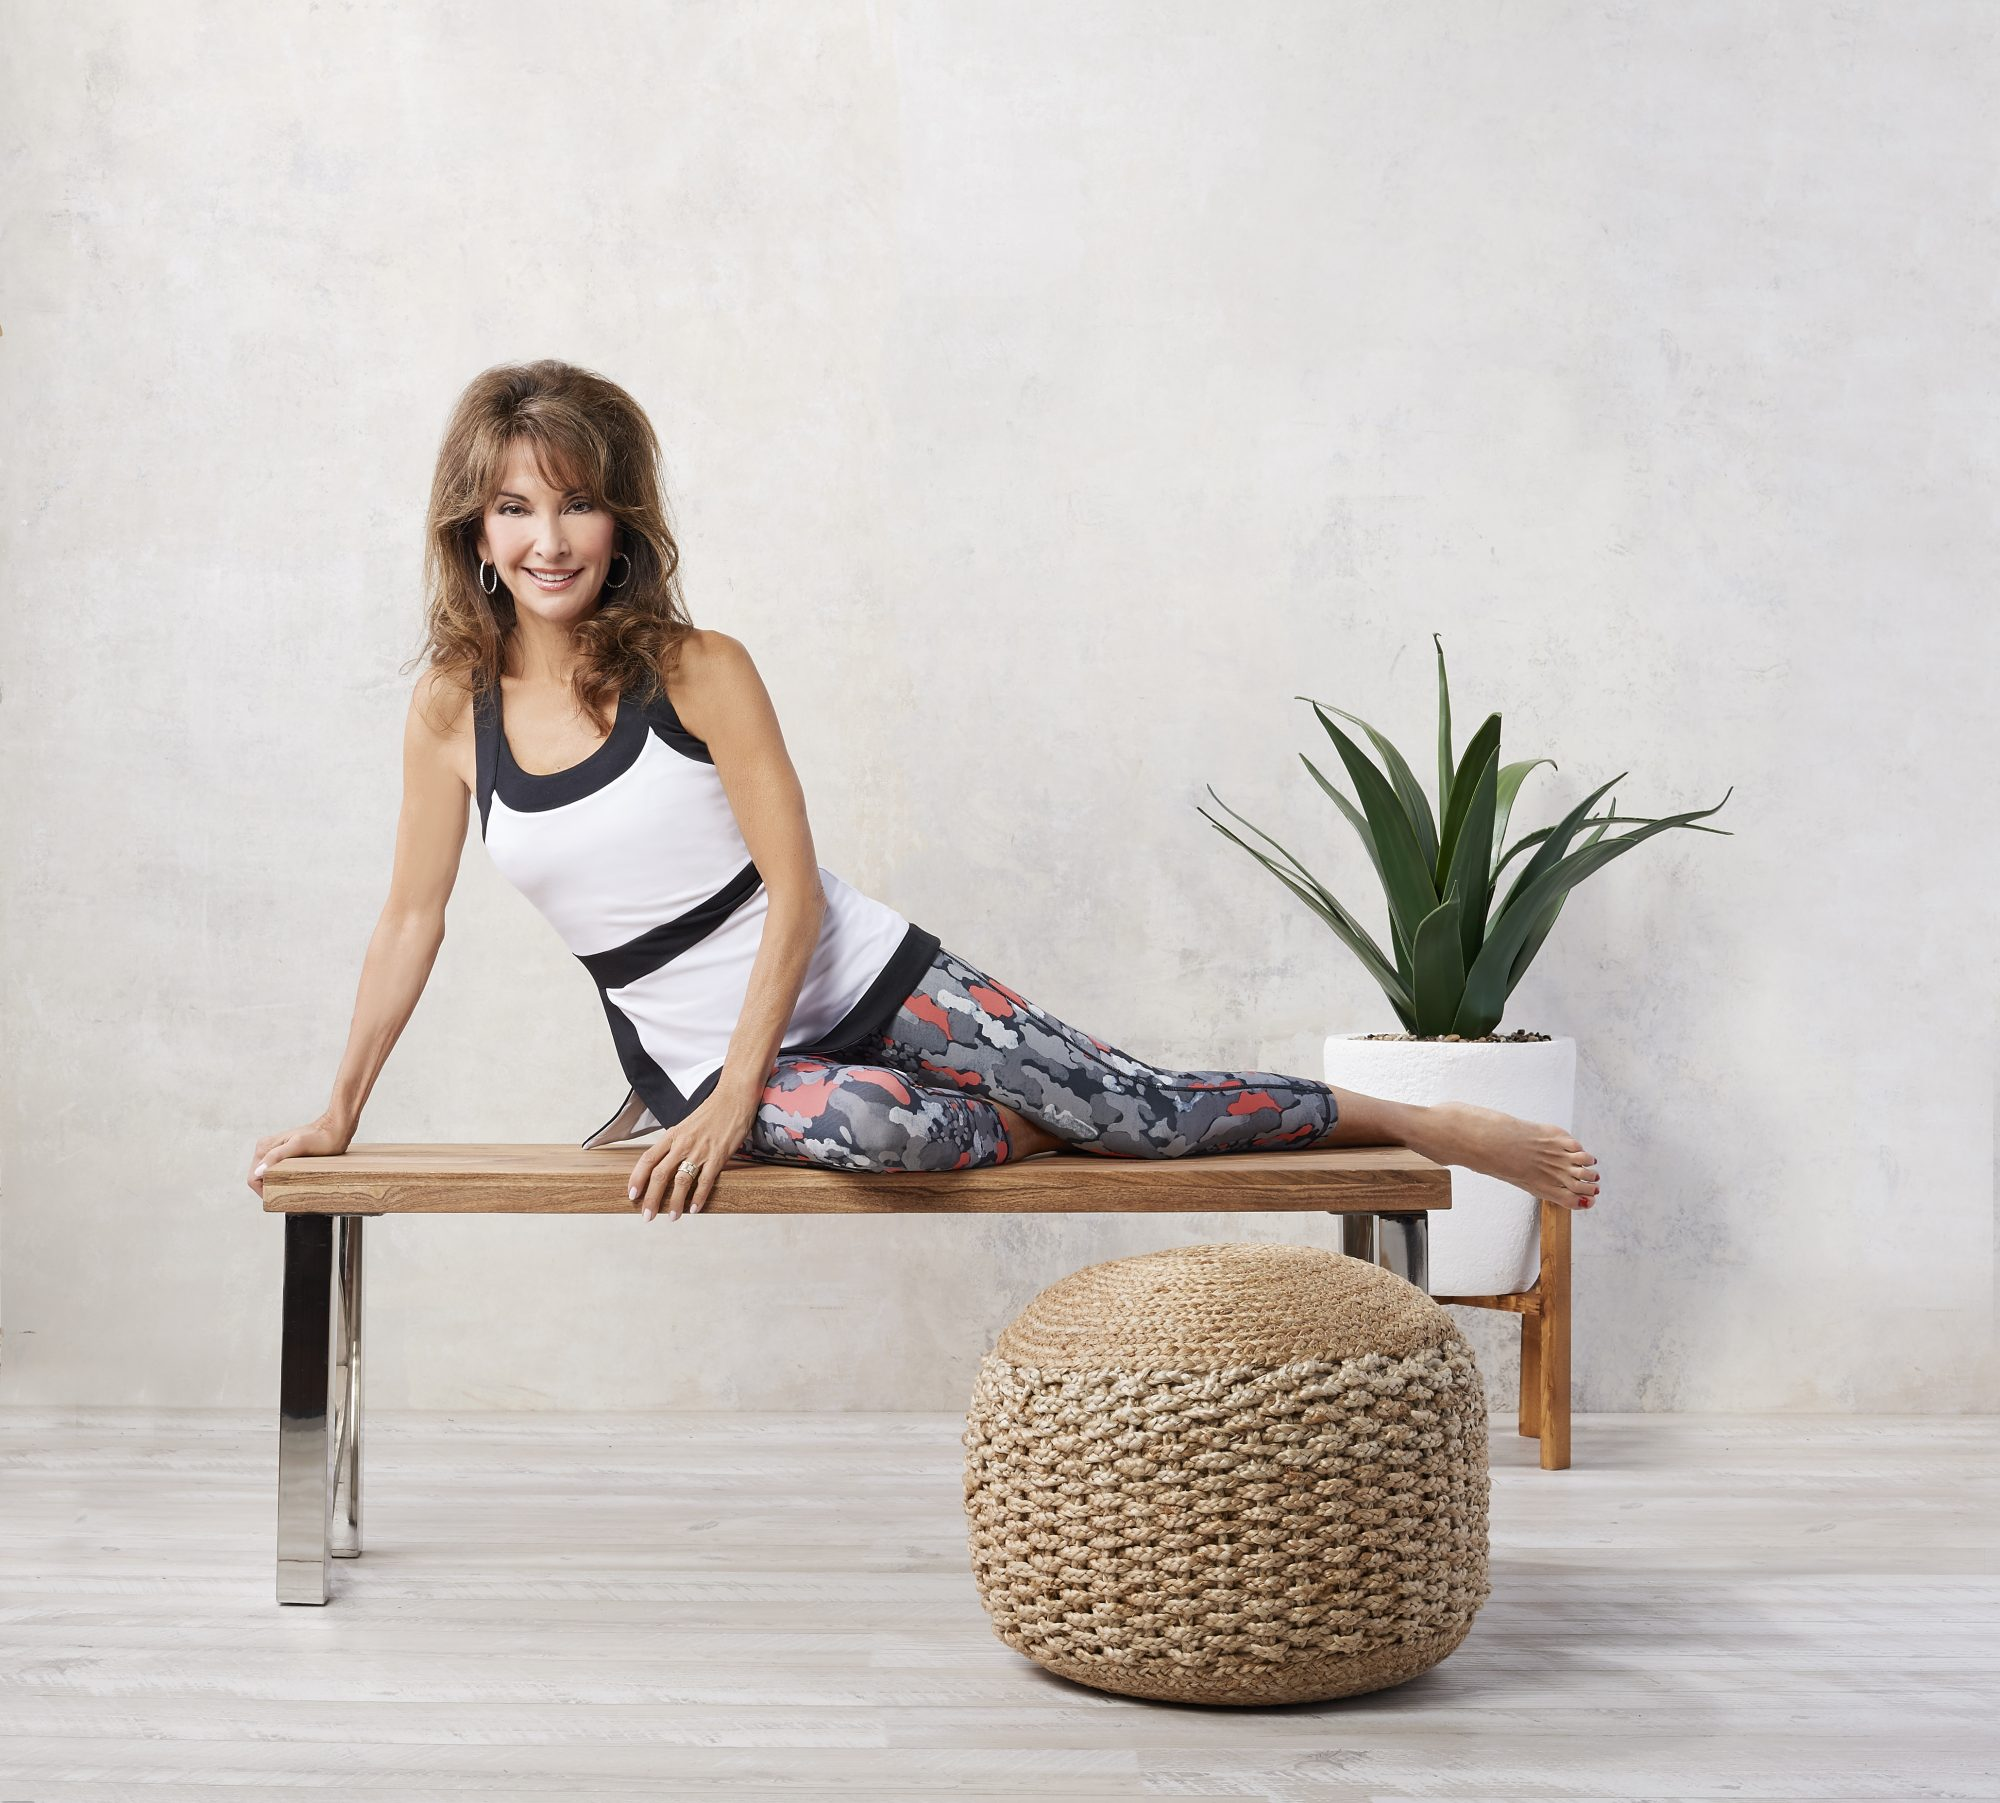 A308494-Susan Lucci Collection Cropped Printed Leggings_A30827-S